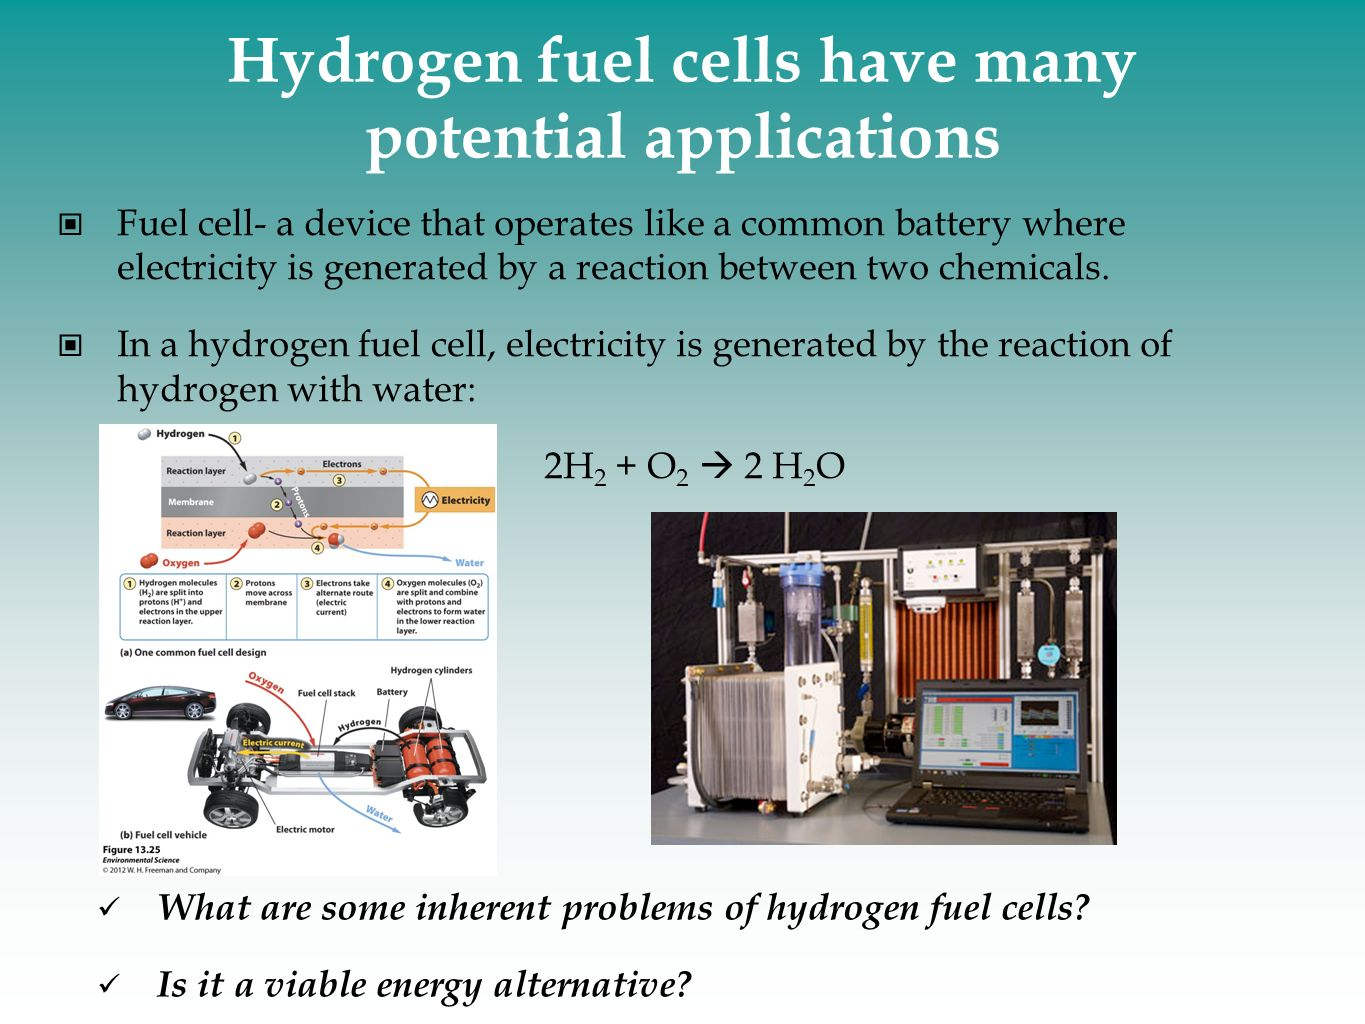 Hydrogen fuel cells have many potential applications